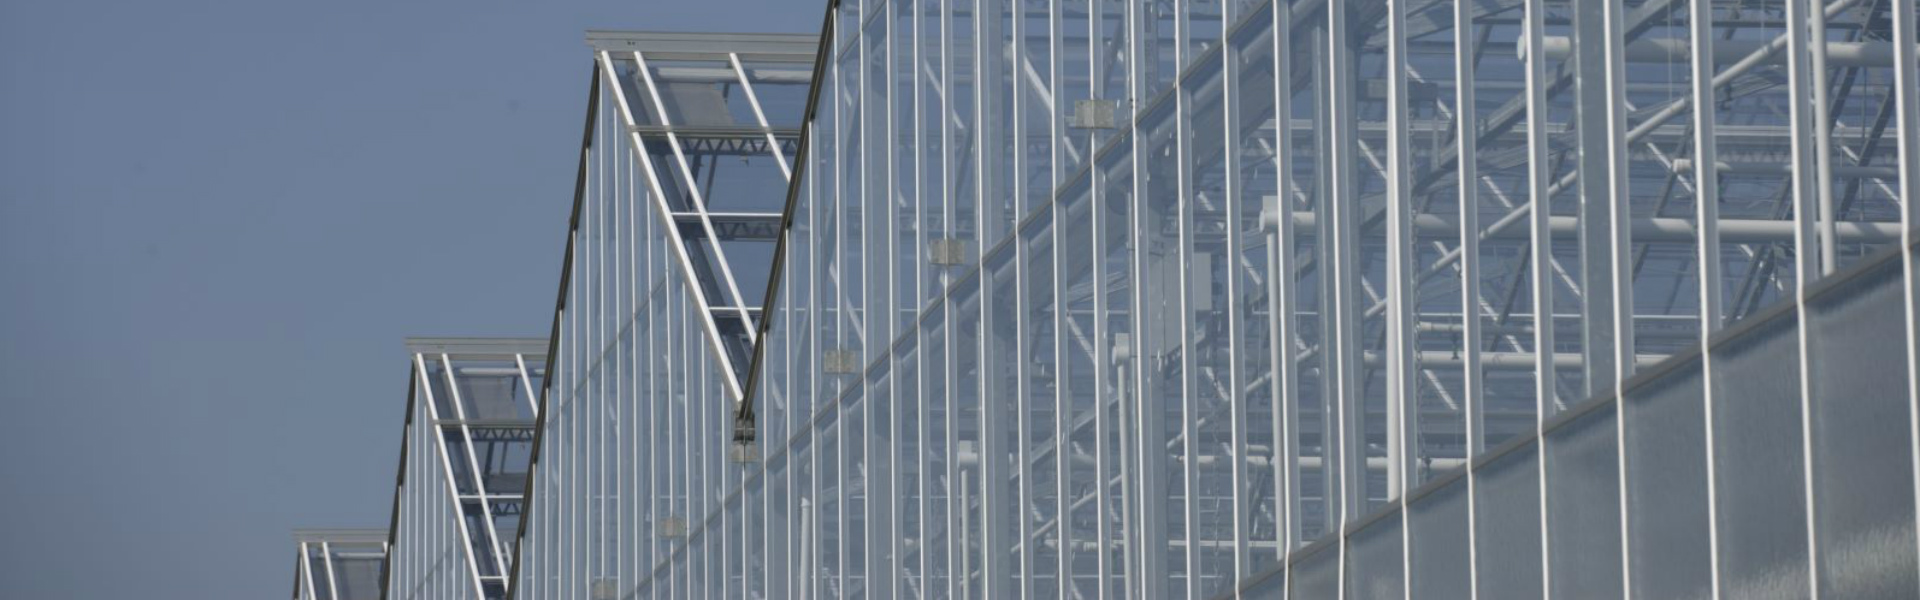 Widespan greenhouse gable system | Alcomij